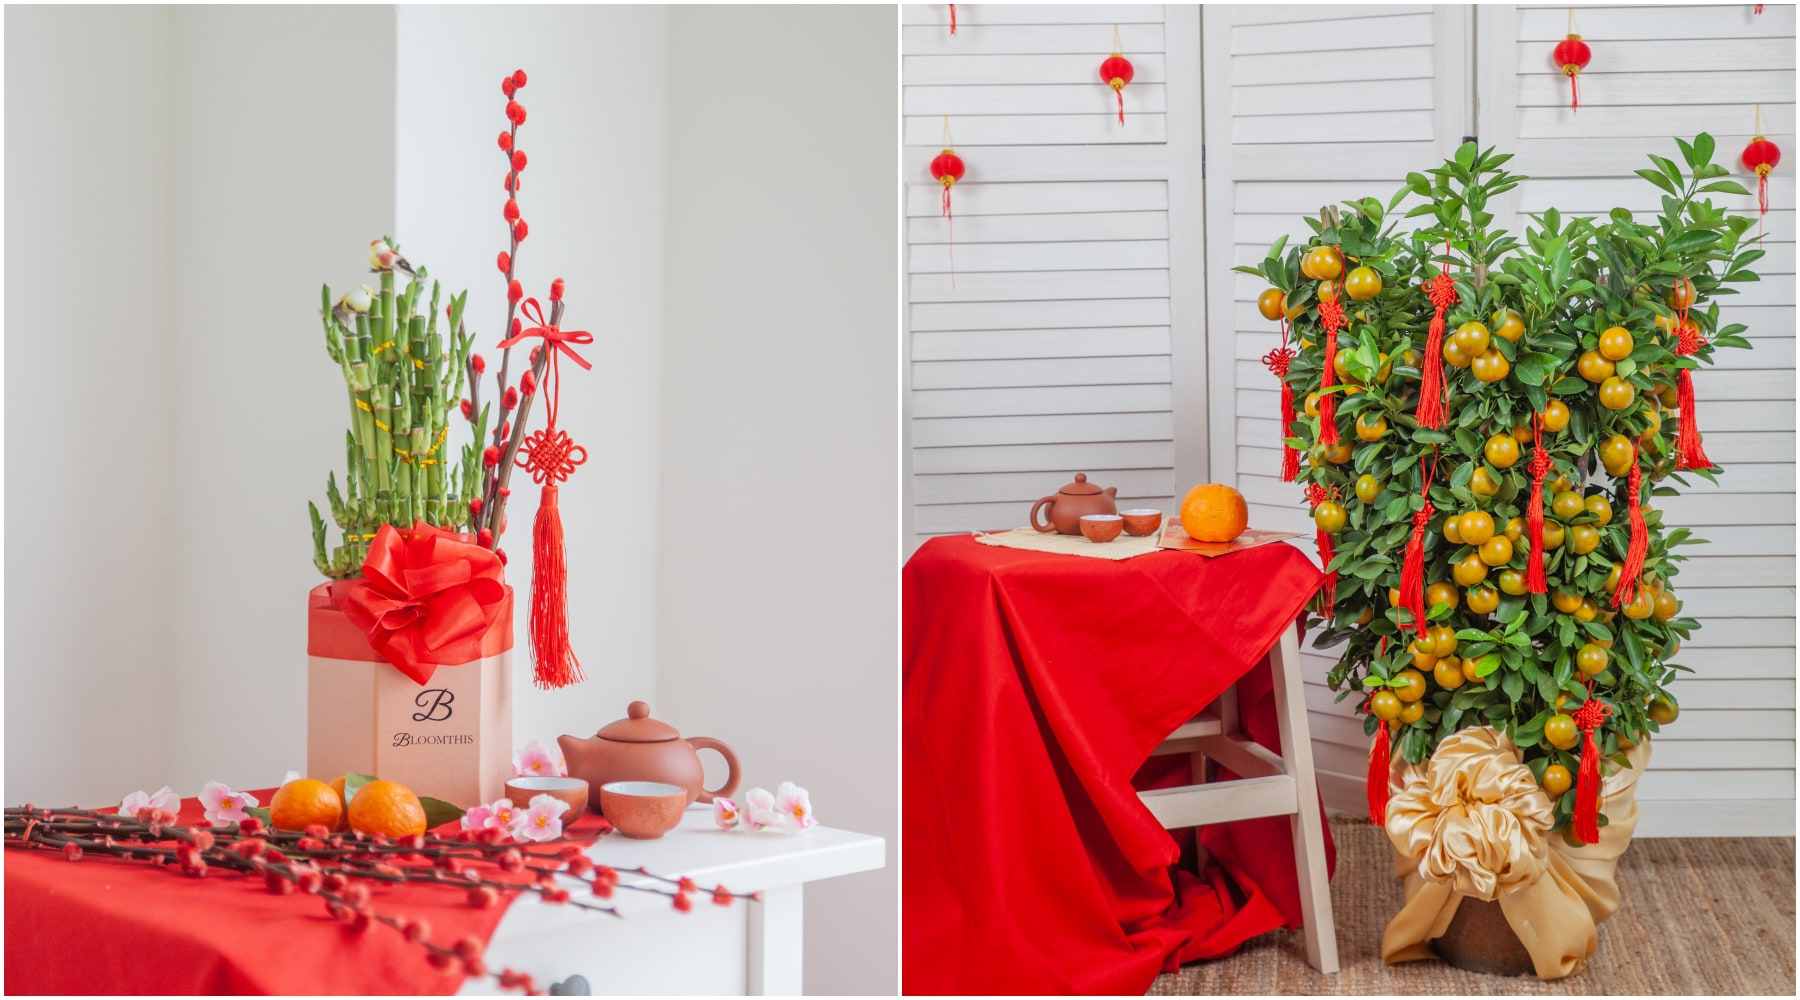 bloomthis-chinese-new-year-gift-guide-chinese-lucky-bamboo-lime-tree